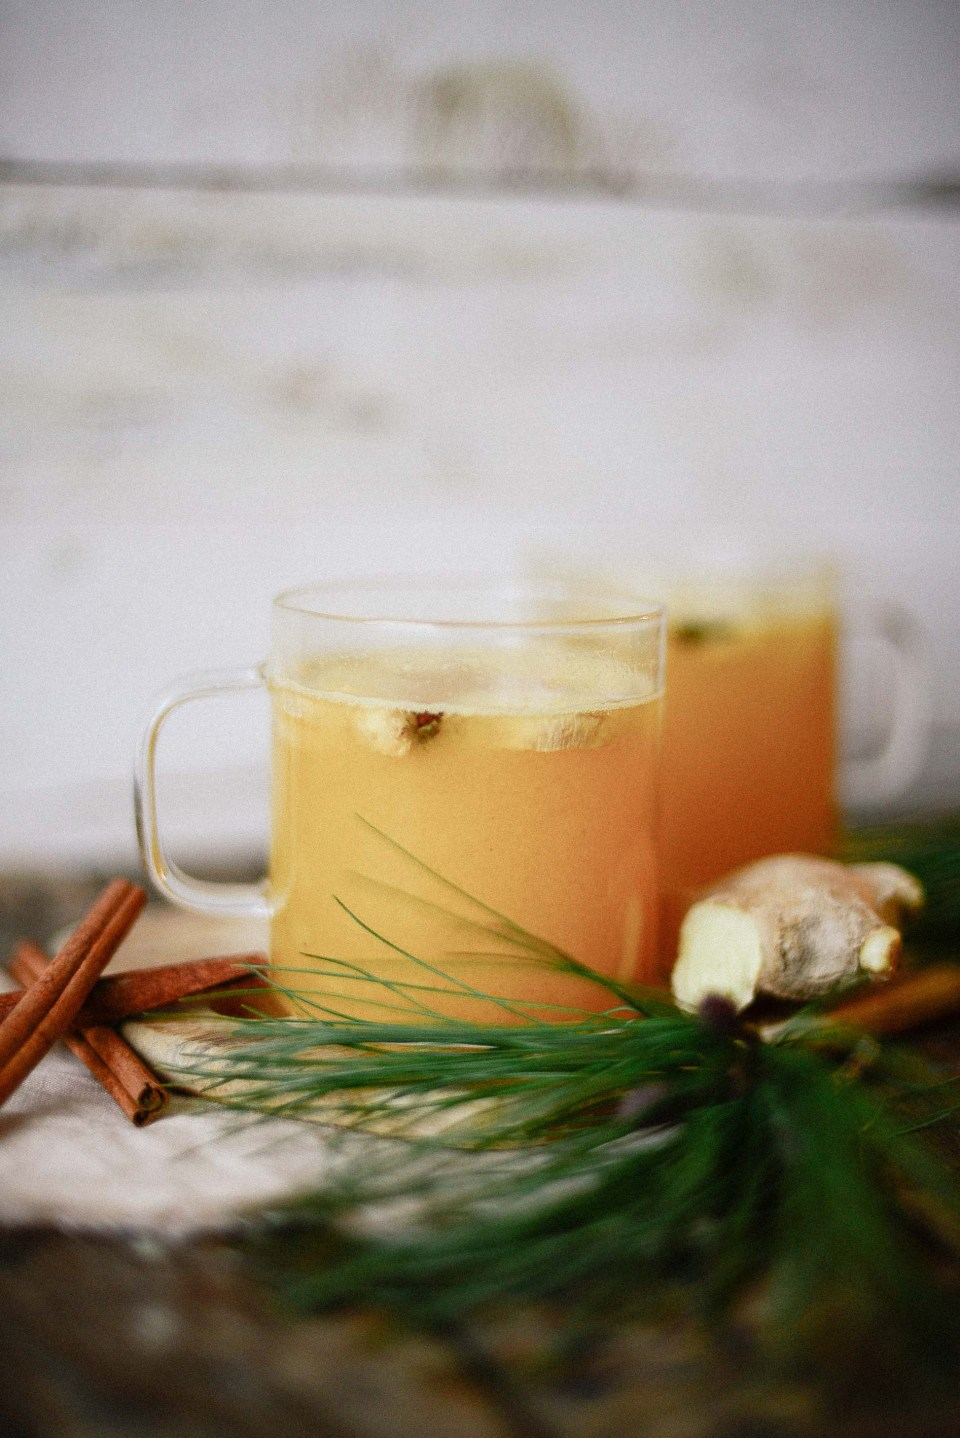 Pineapple ginger Punch - Delicious warm non alcoholic punch